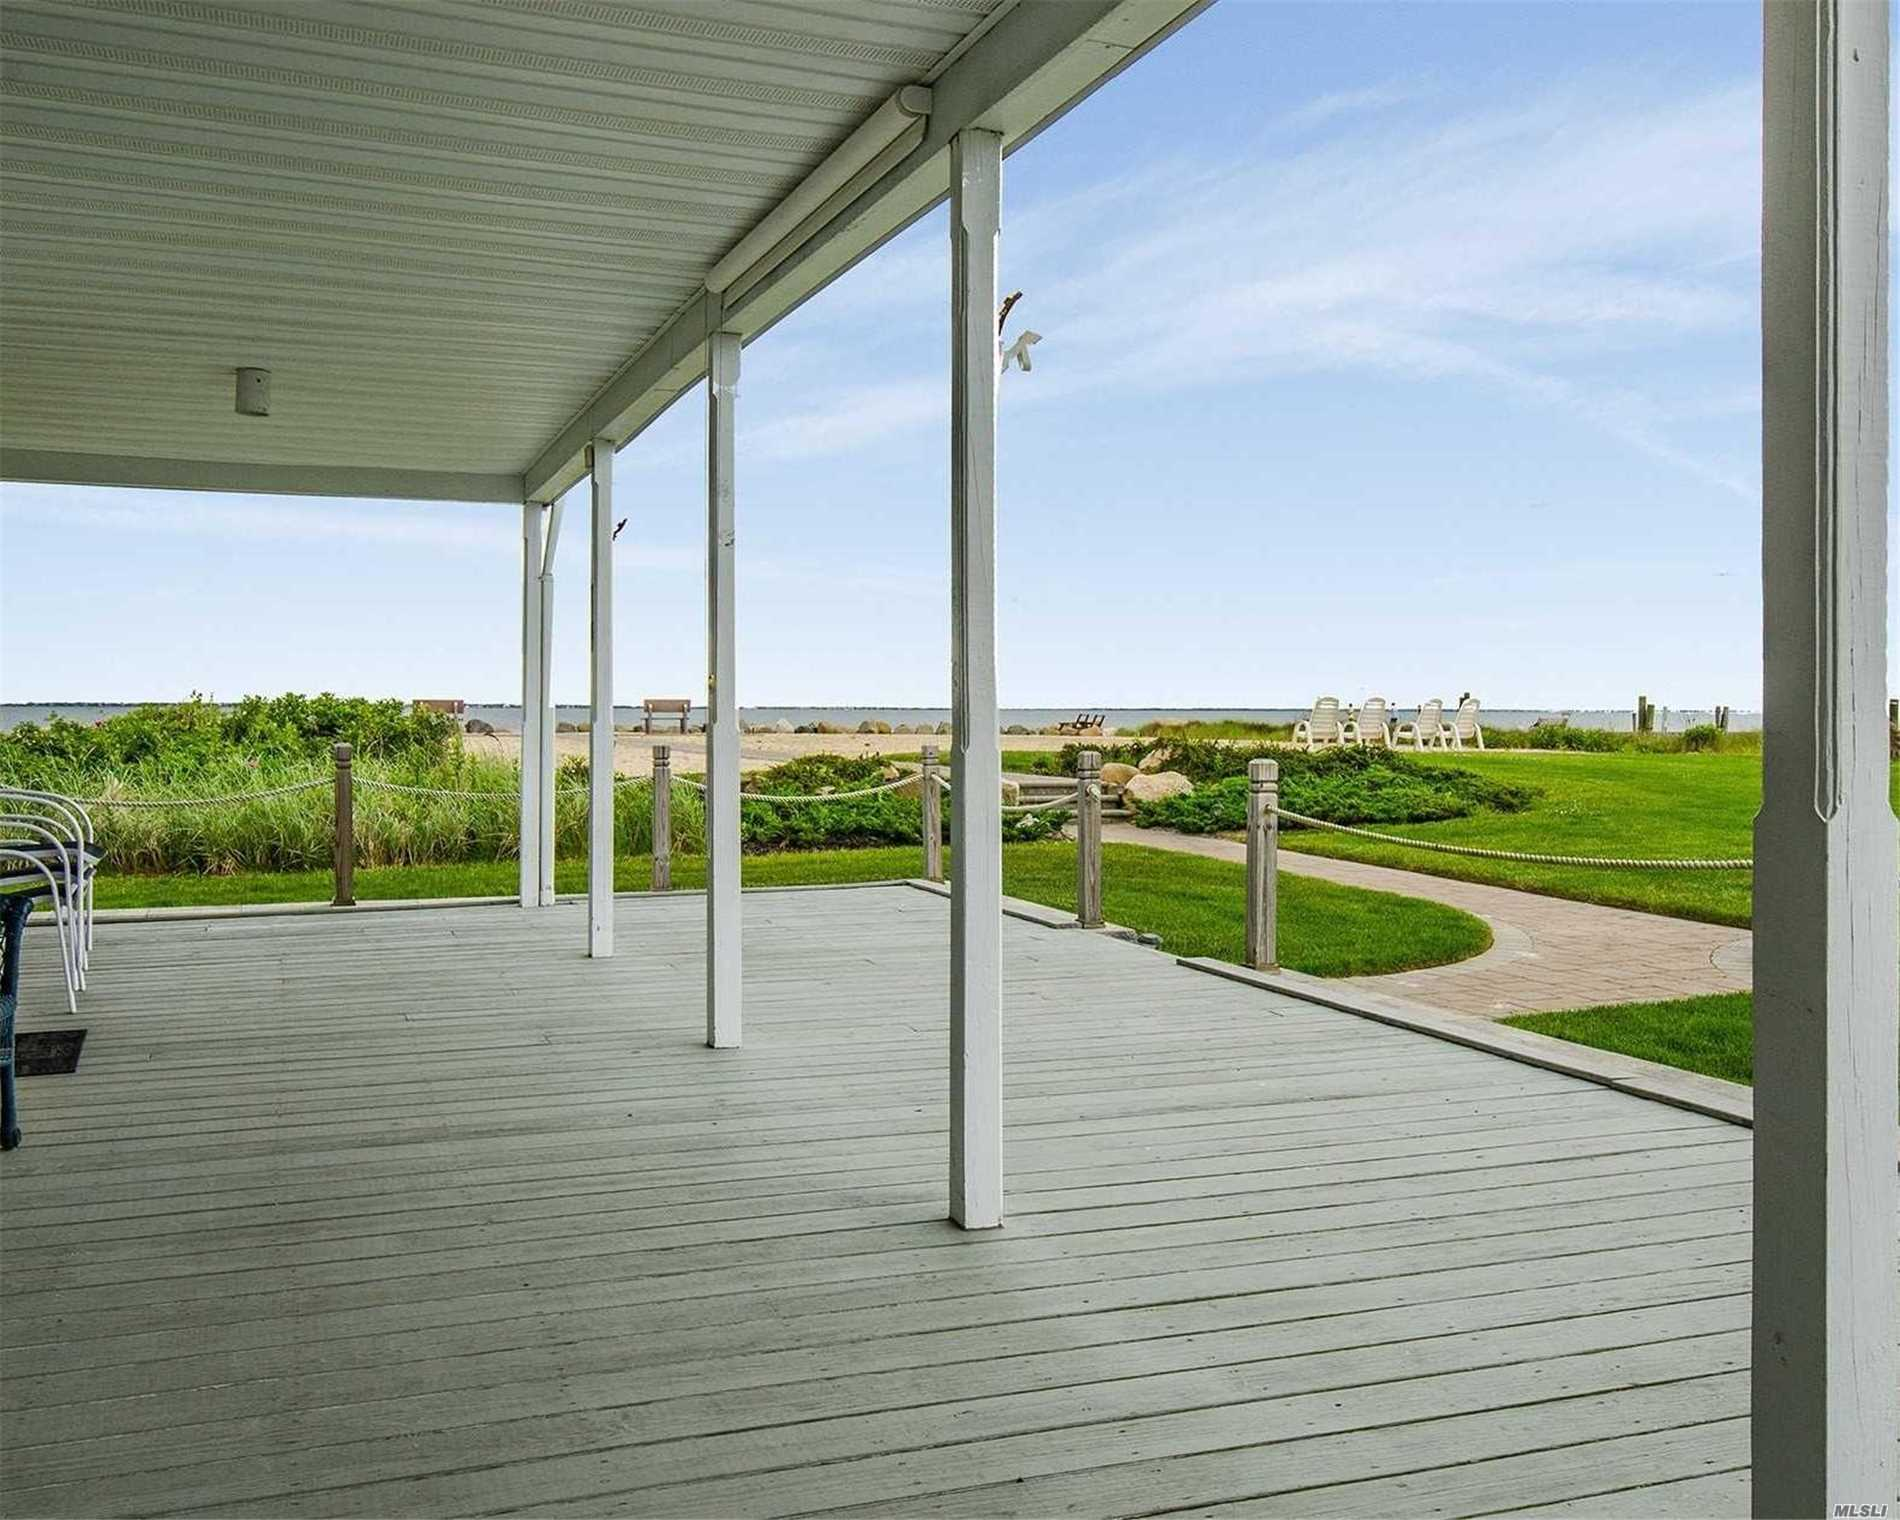 Deal Died. Price Change.  One Of A Kind. Beautiful 1 Bedroom Coop In South Sayville. Private Community. Beach Front Living All Year Round. Breath Taking Water Views, Enjoy Sunrises, Sunsets & Bay Breezes. Living Area/Kitchen Combo, Open Floor Plan. All Updated. Deck Faces West With Expansive Views Of The Bay & Marina. Maintenance Includes - Taxes, Heat & Water